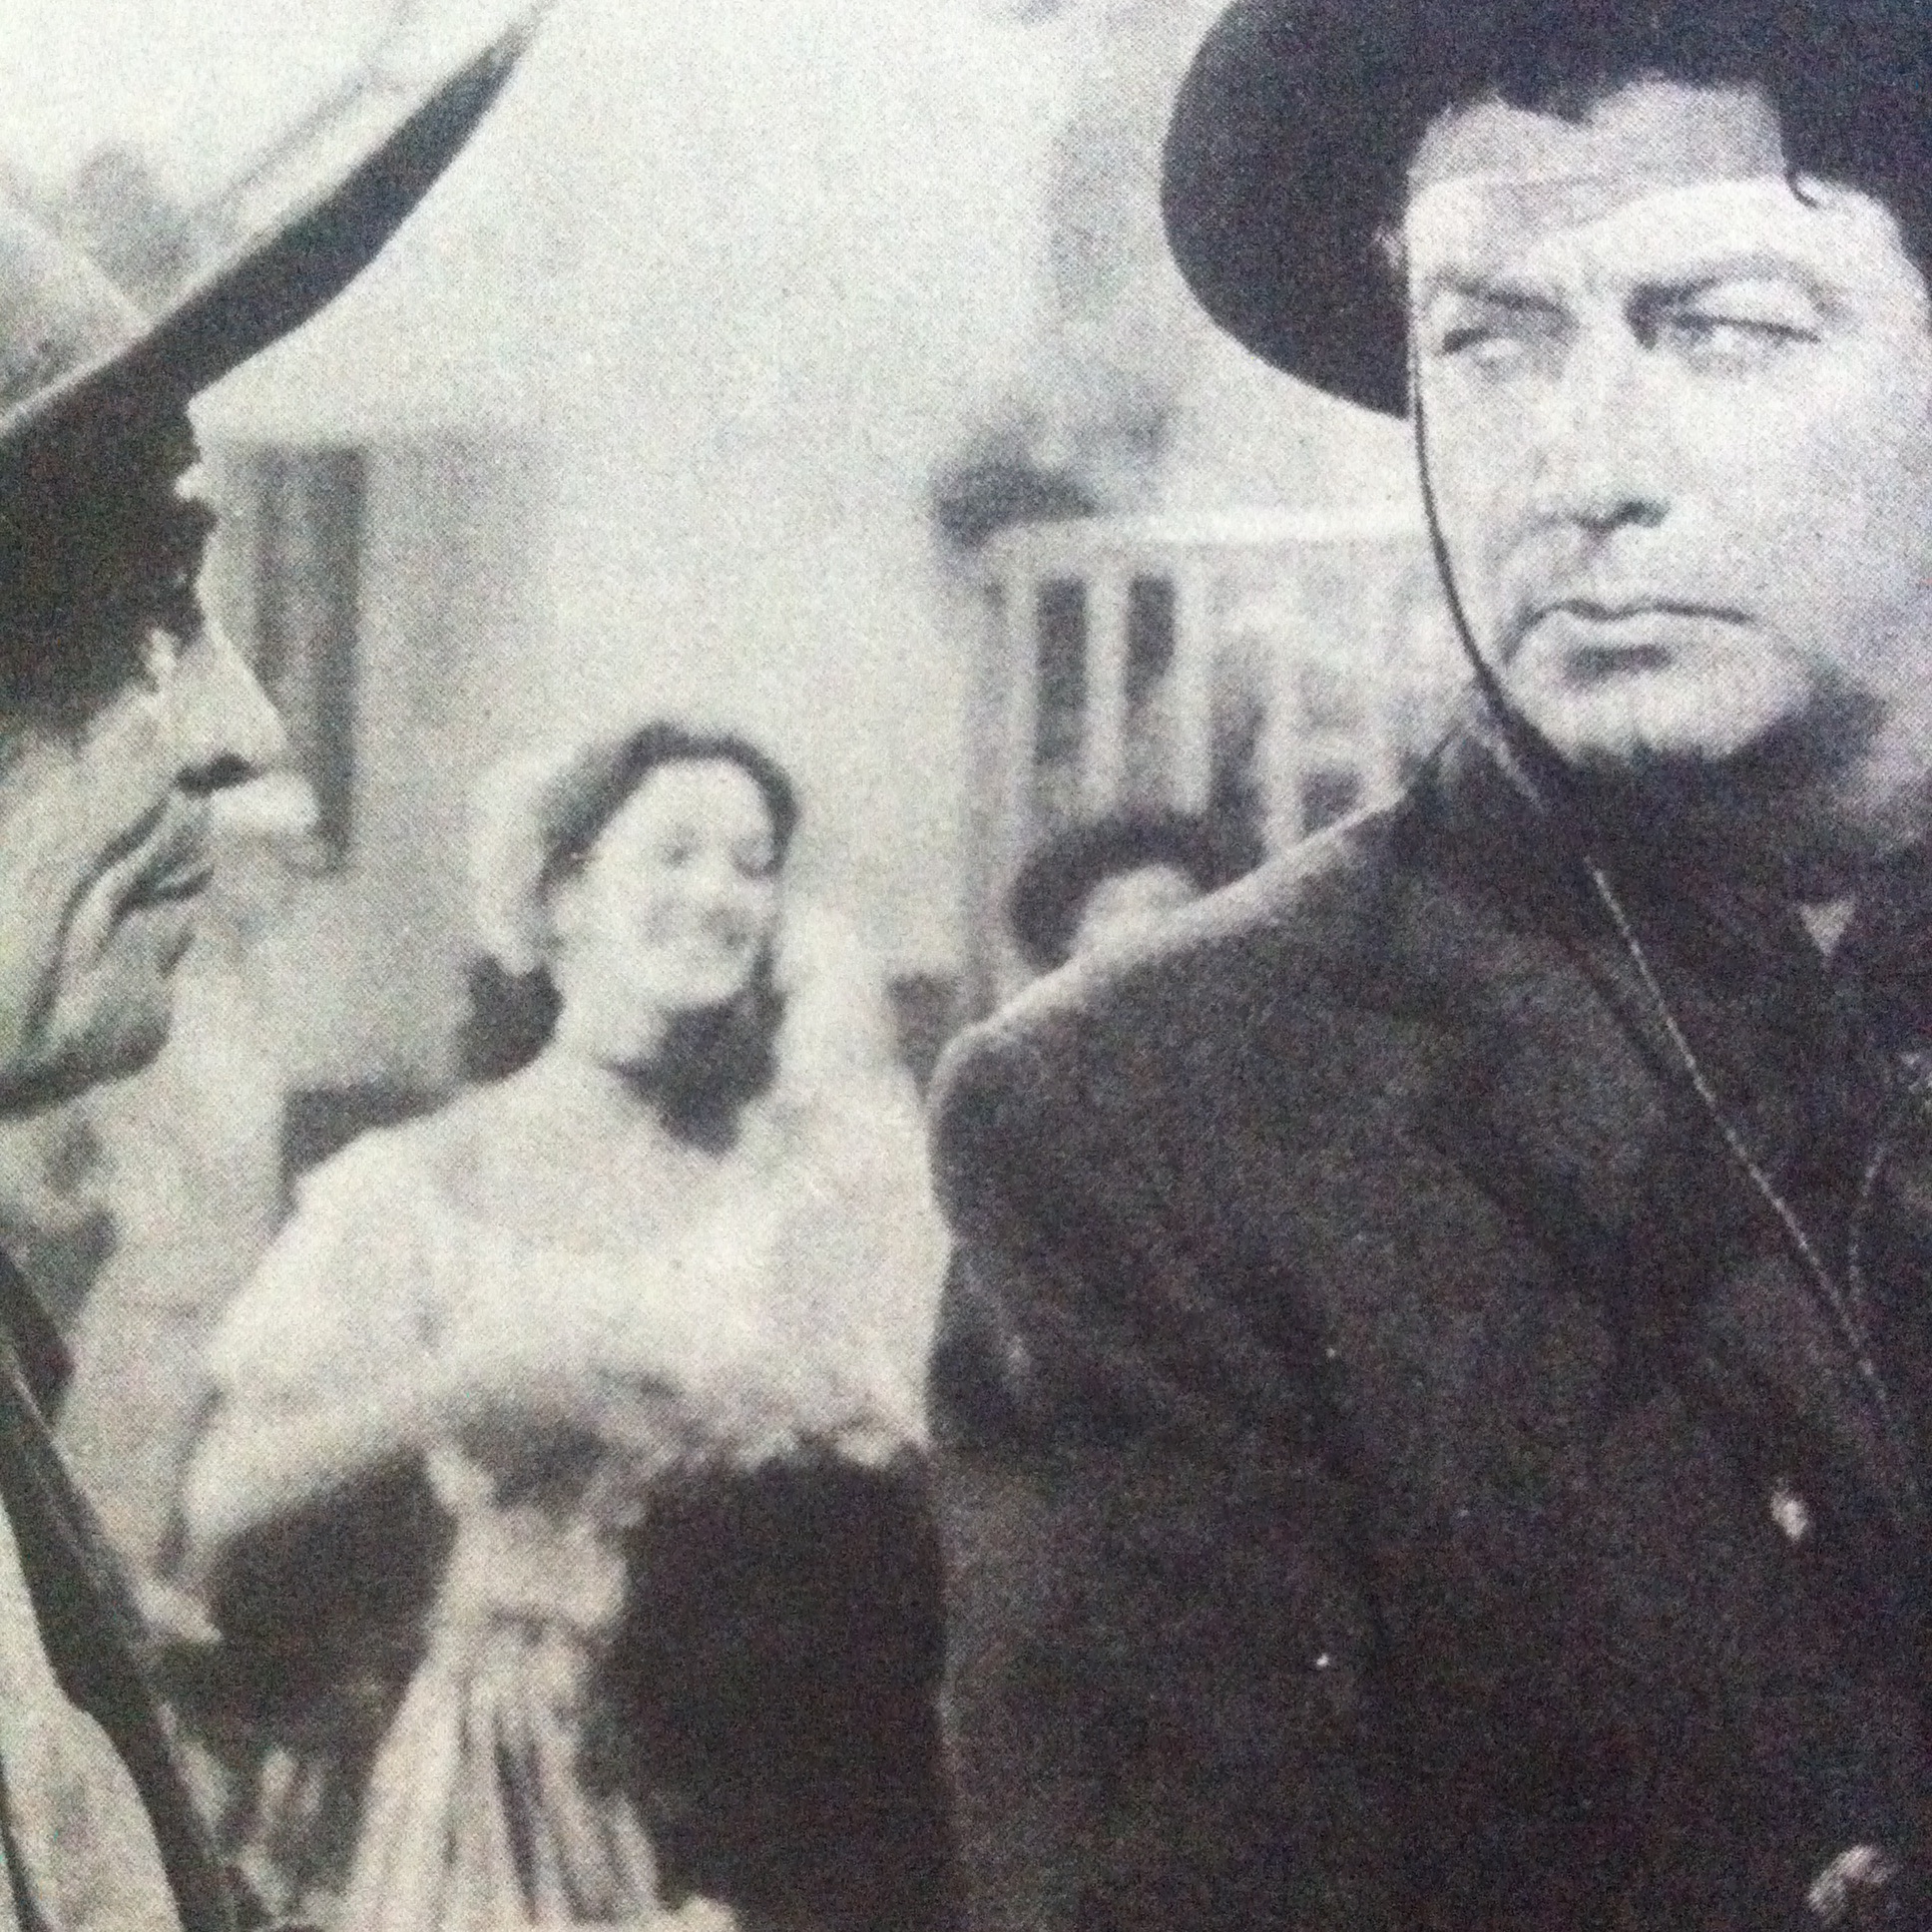 Robert Taylor and Charles Stevens in Ride, Vaquero! (1953)